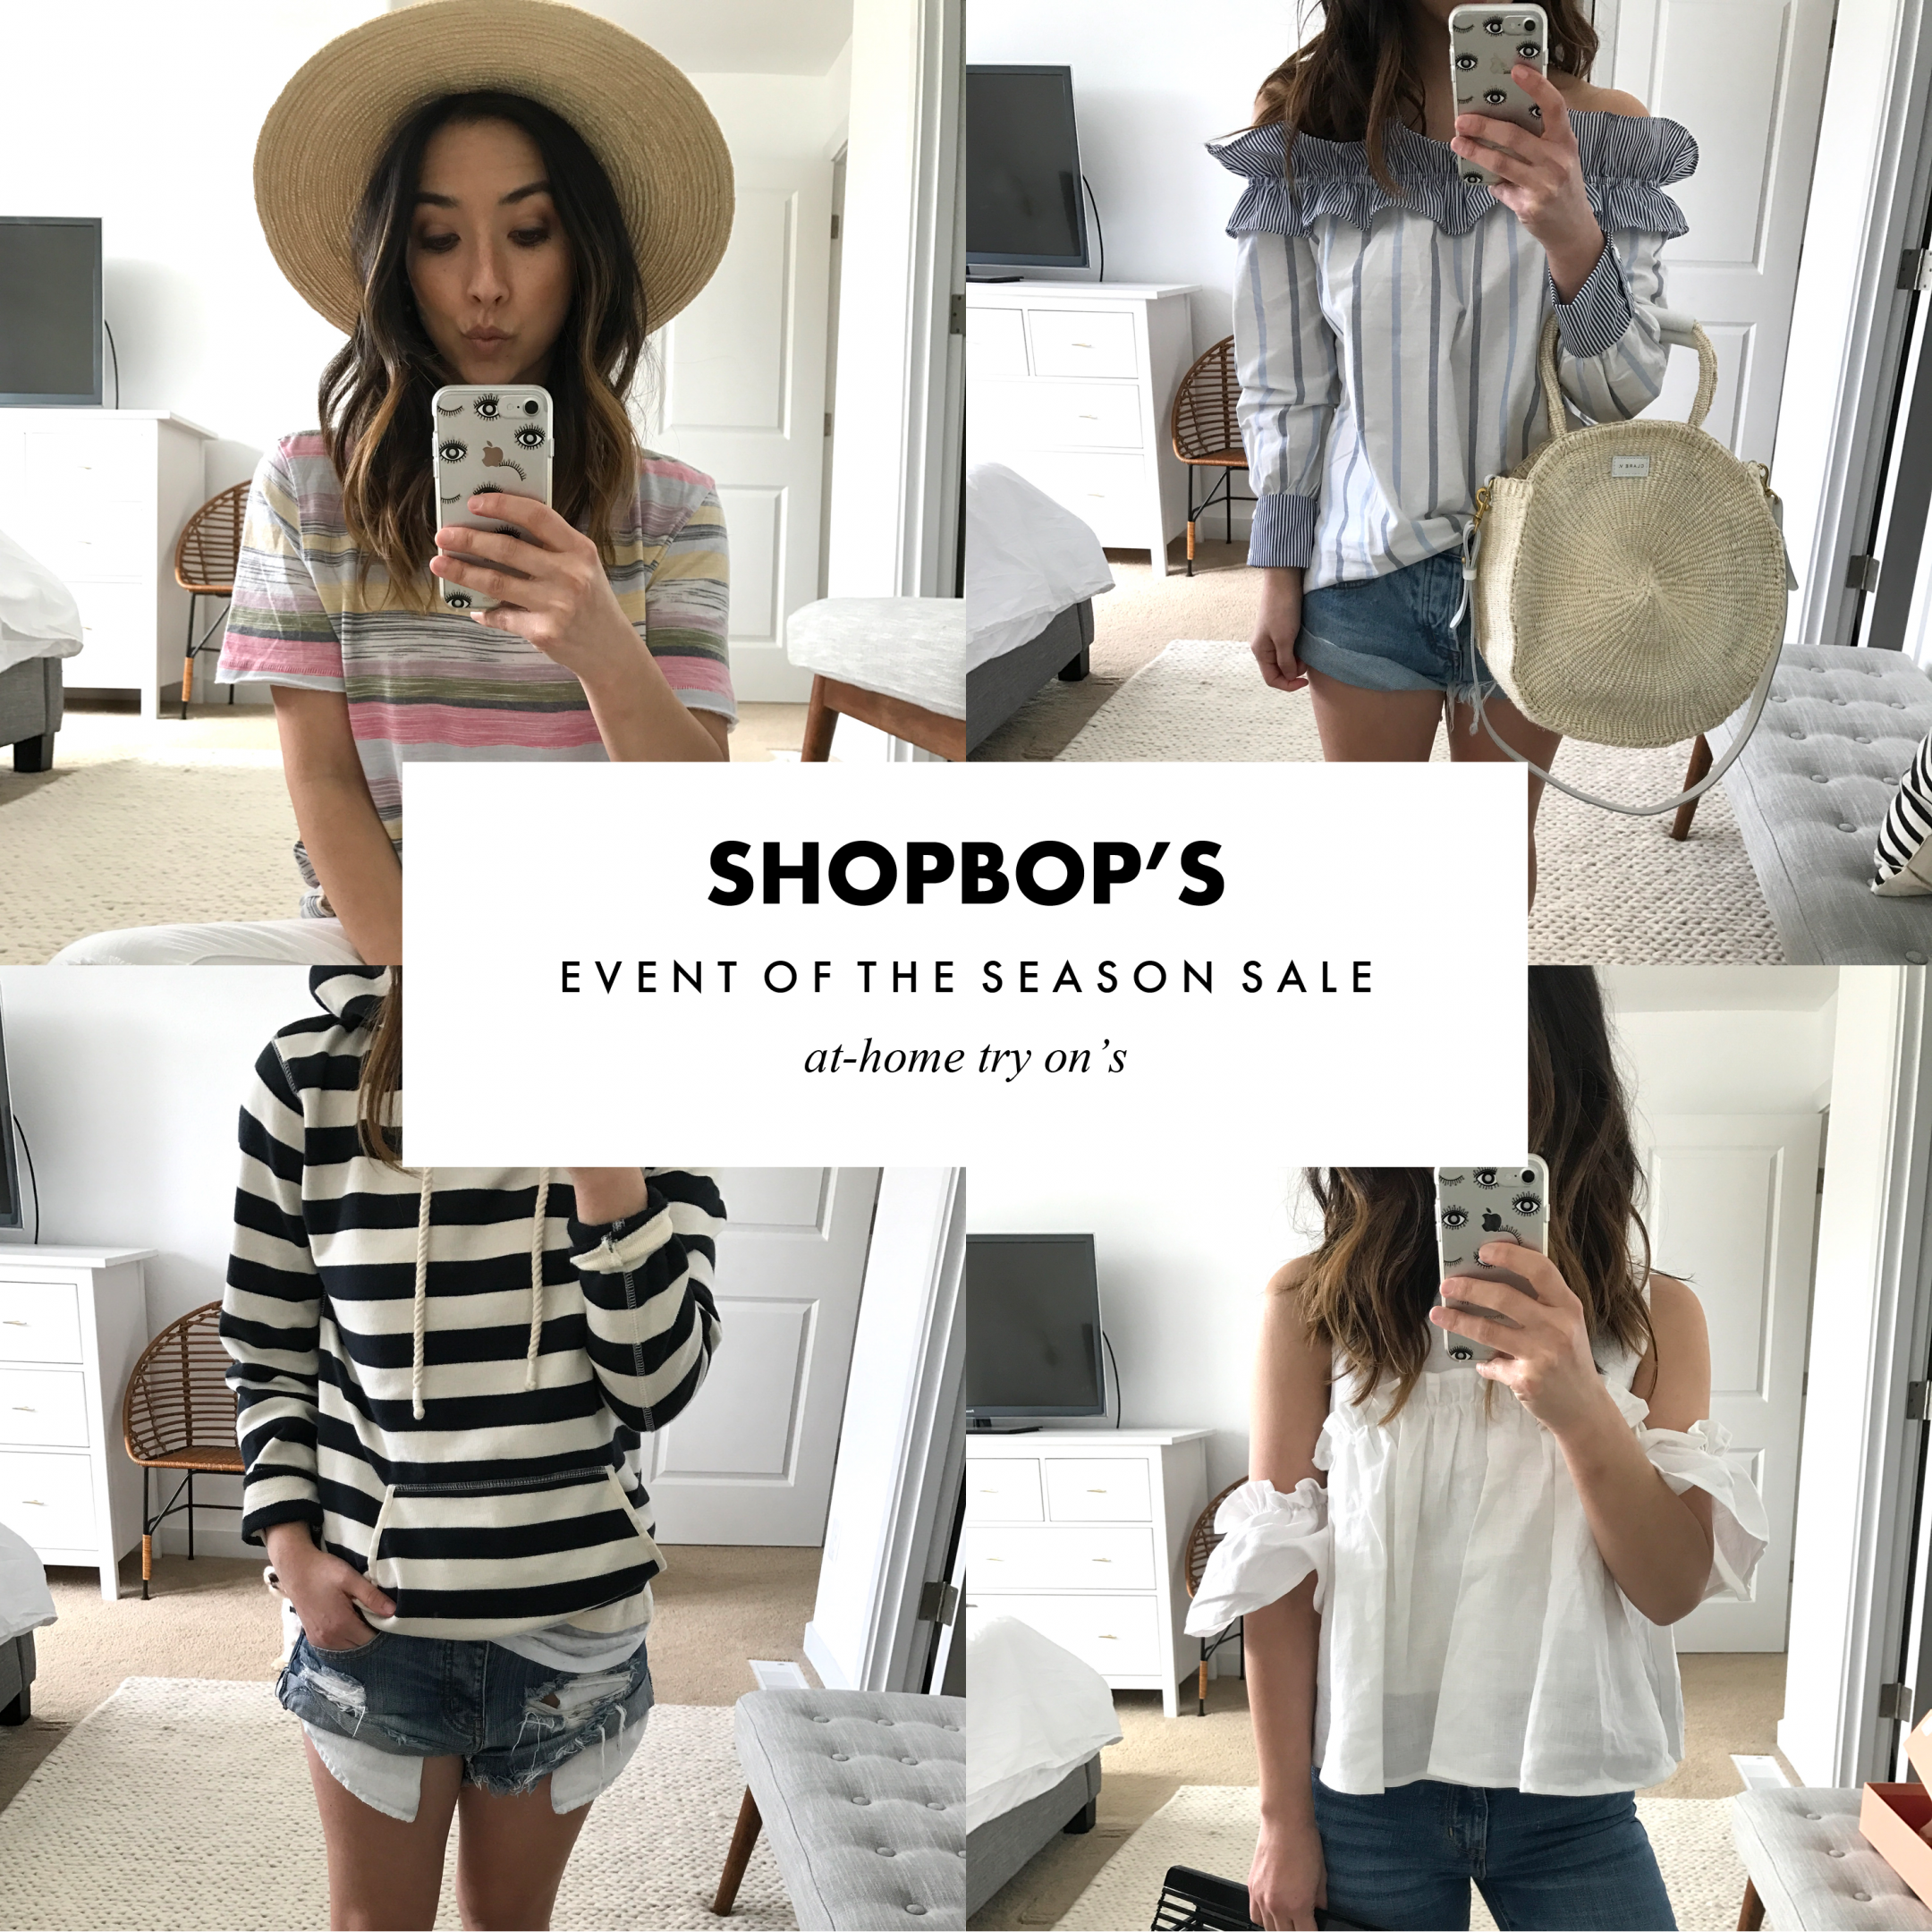 shopbop's event of the season sale at home try ons